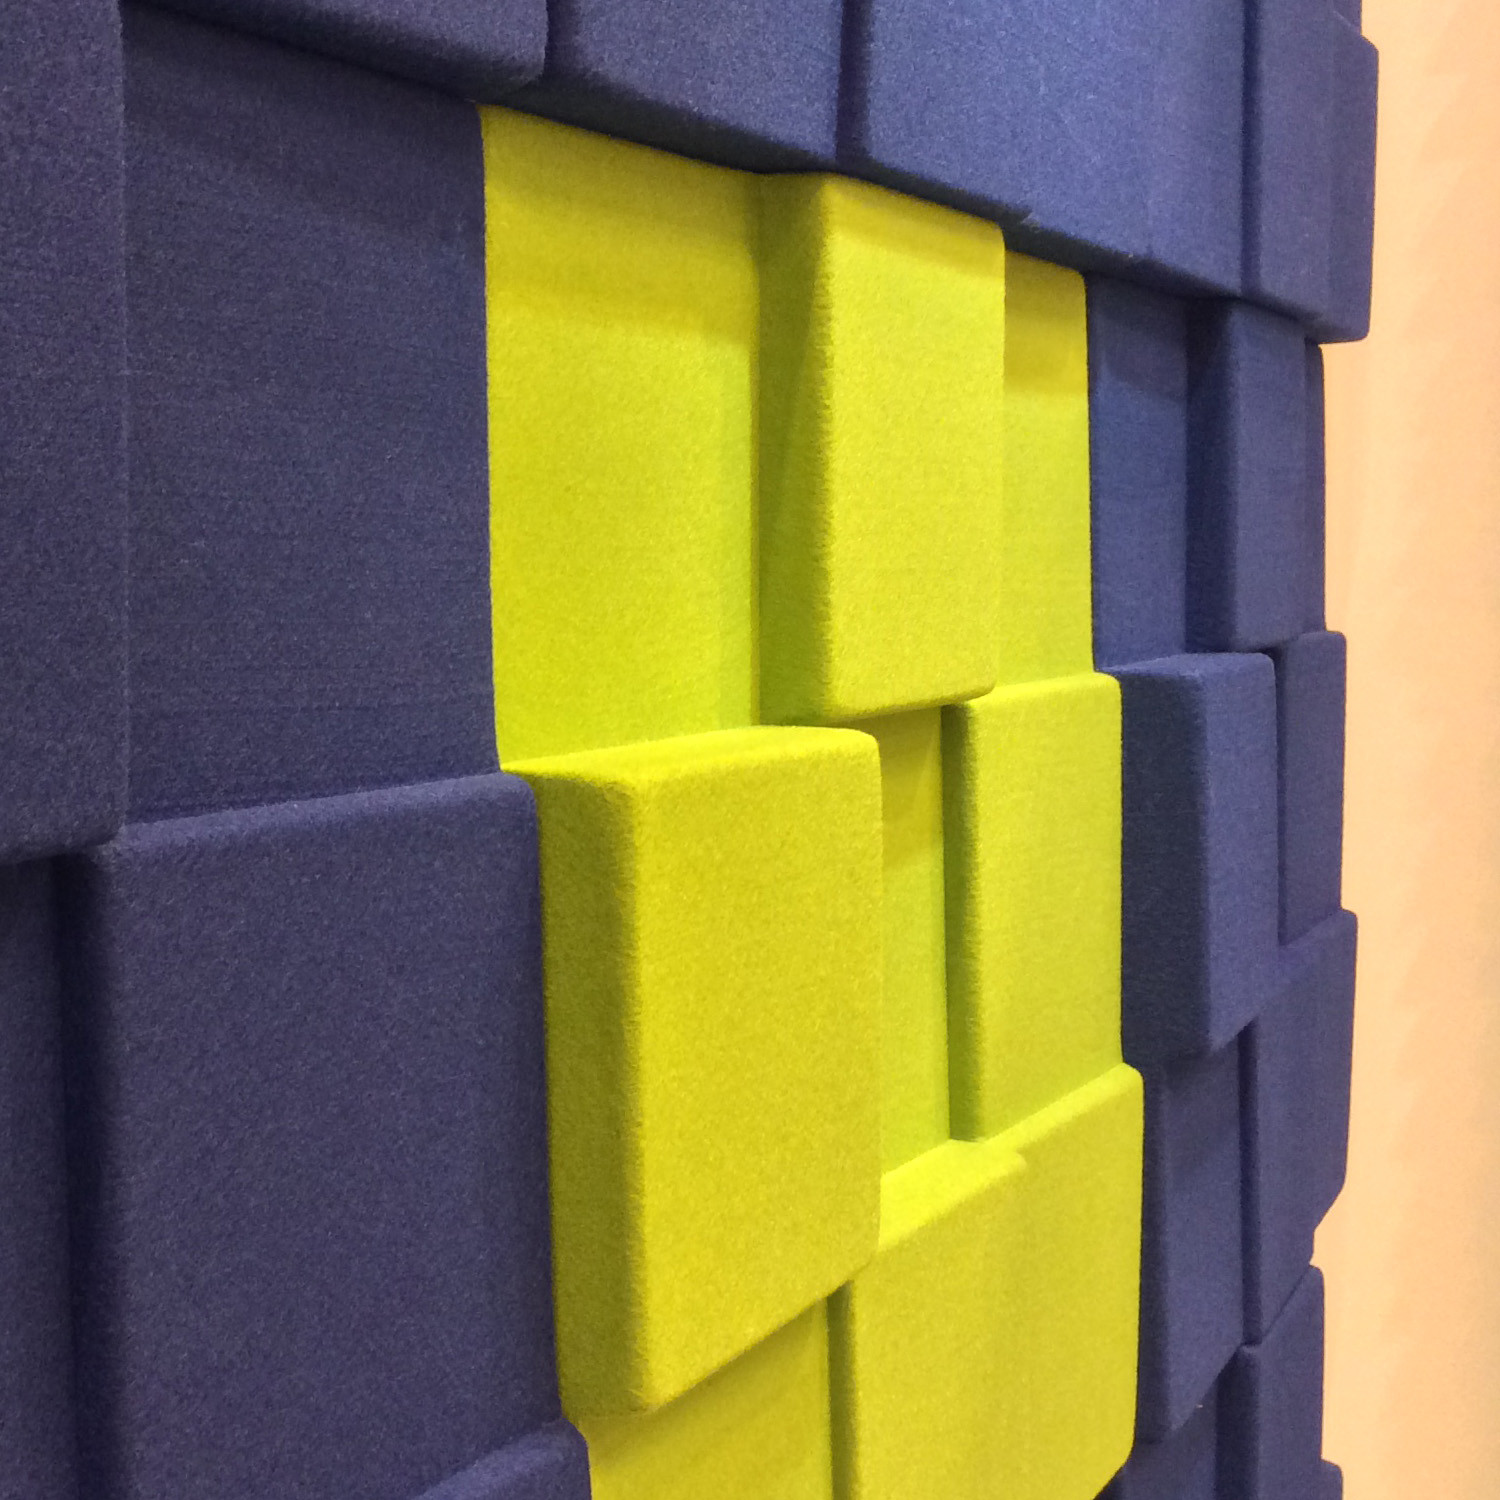 Cubism Acoustic Wall Panels